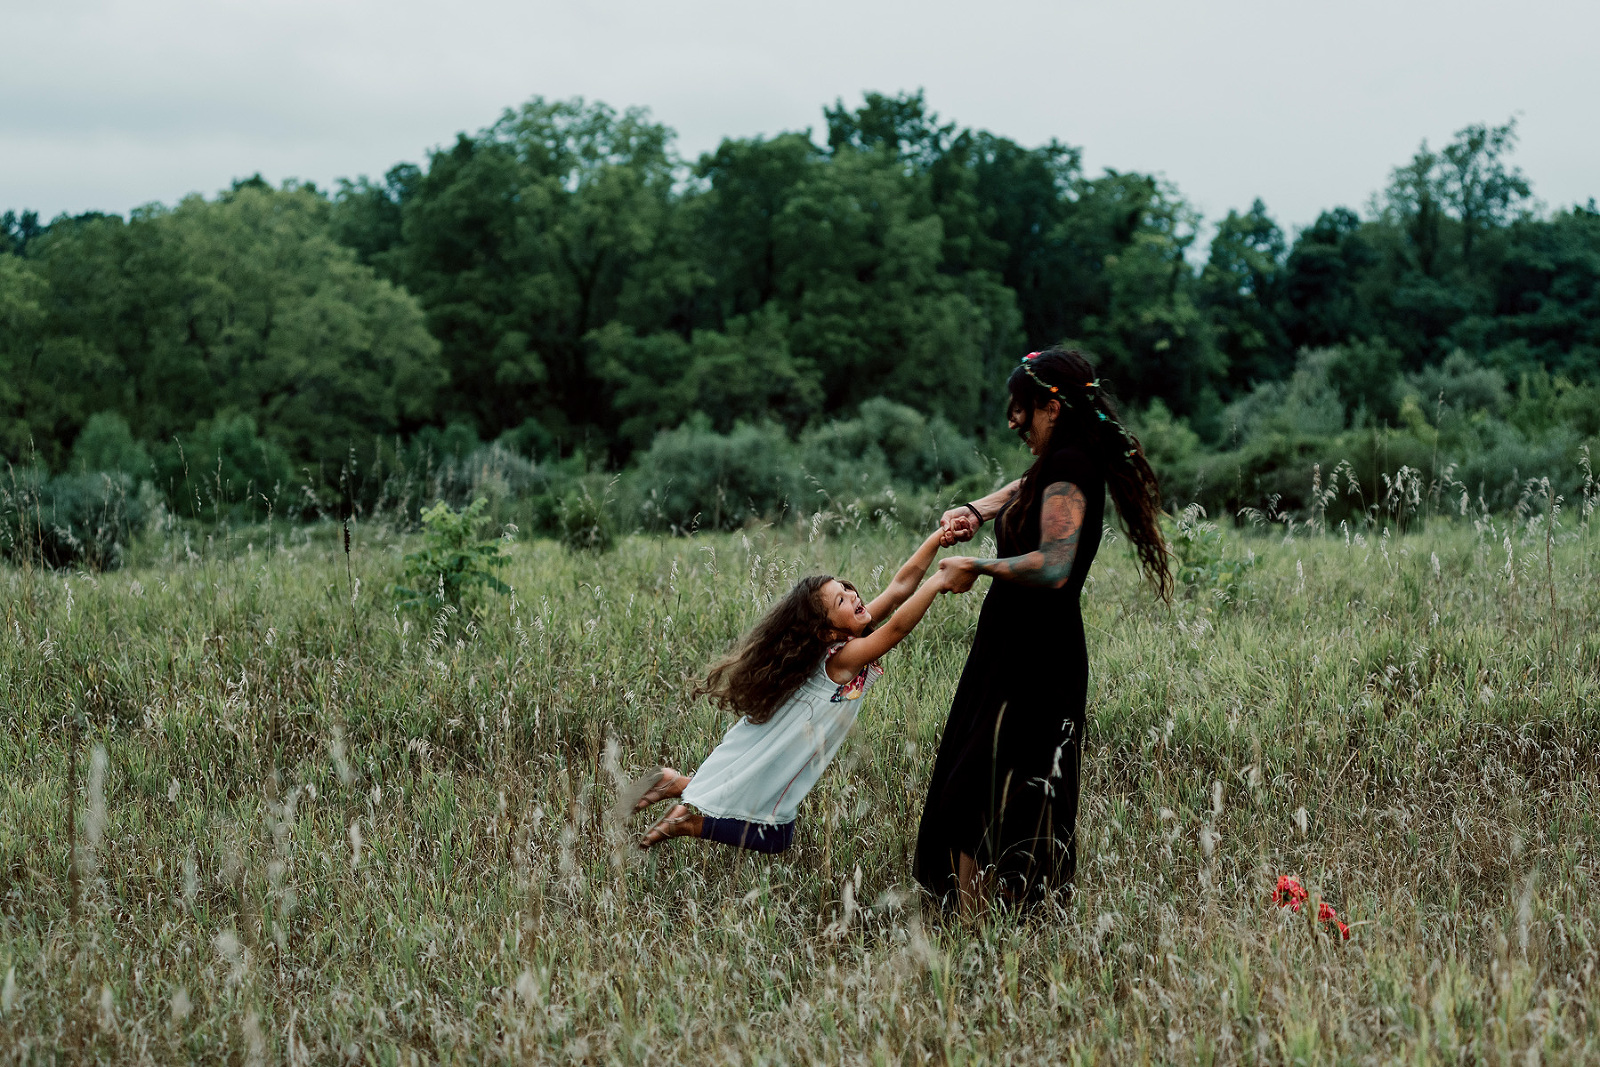 mother and child playing in field during lifestyle family photography session